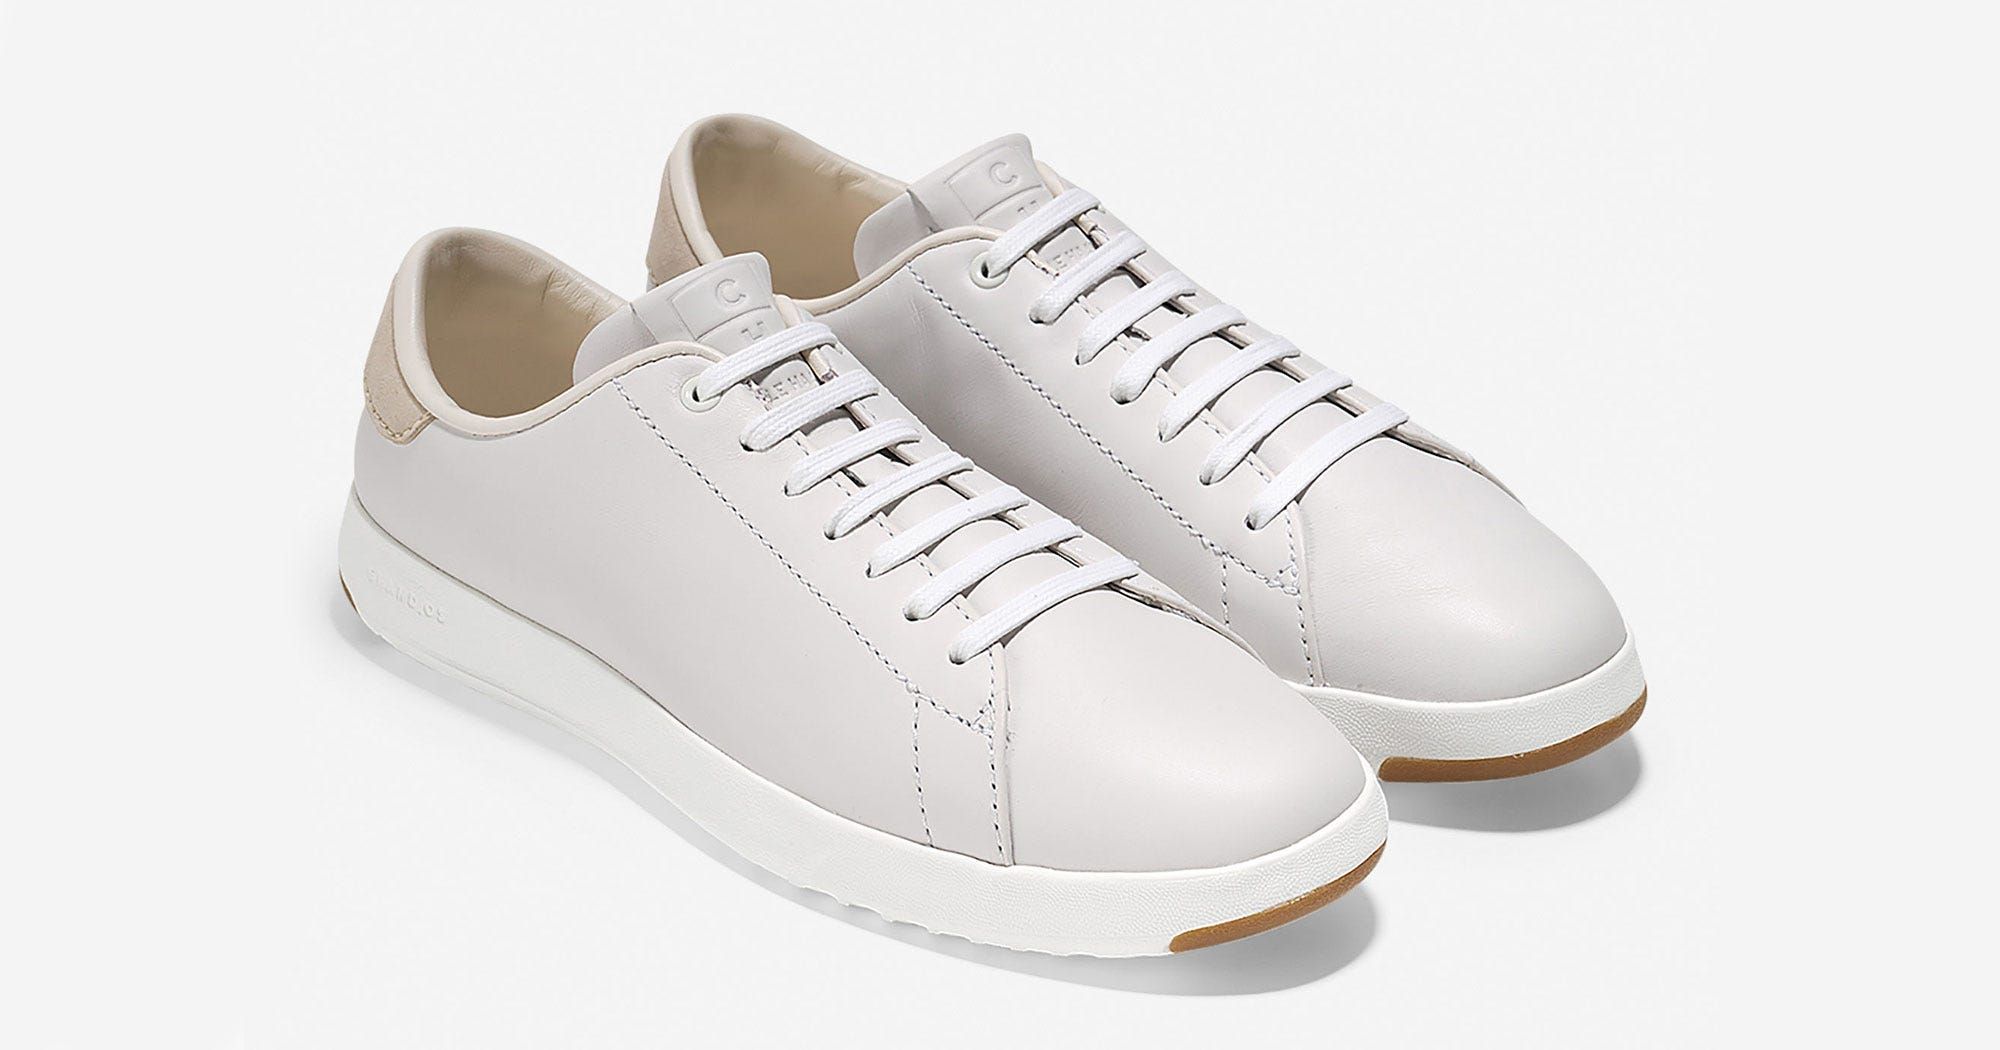 57e1c5c1a Best White Sneakers For Women - 2019 Cool New Trends